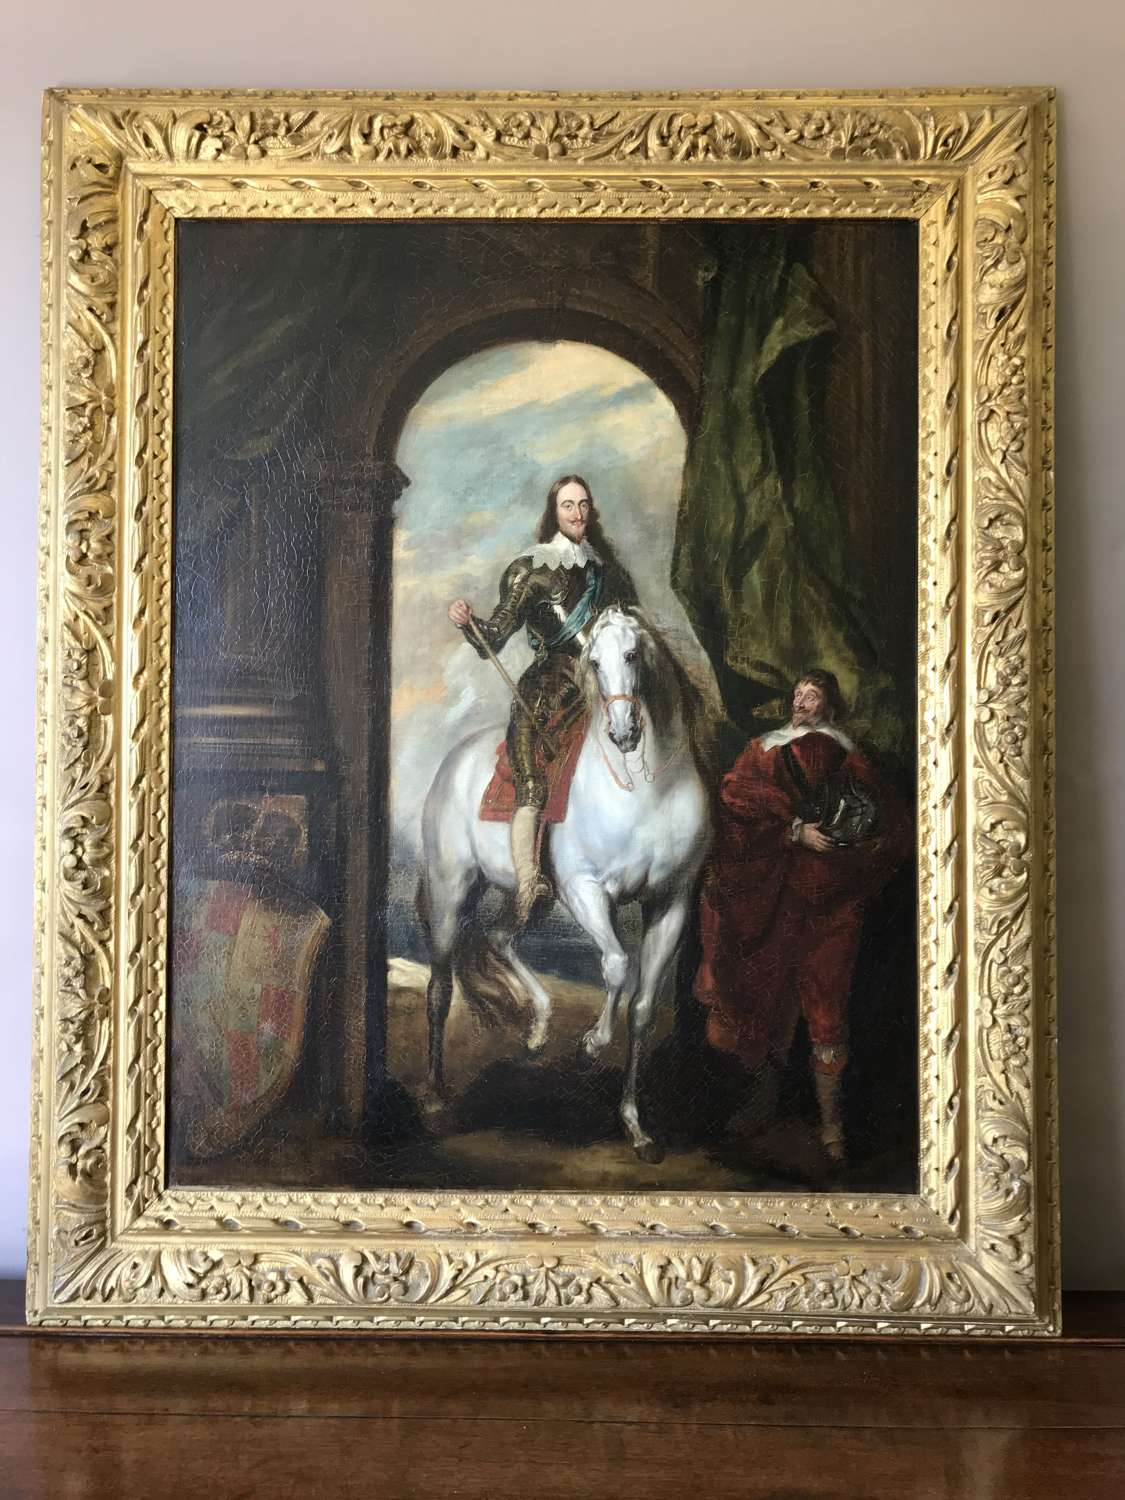 A good quality Royal portrait of Charles I